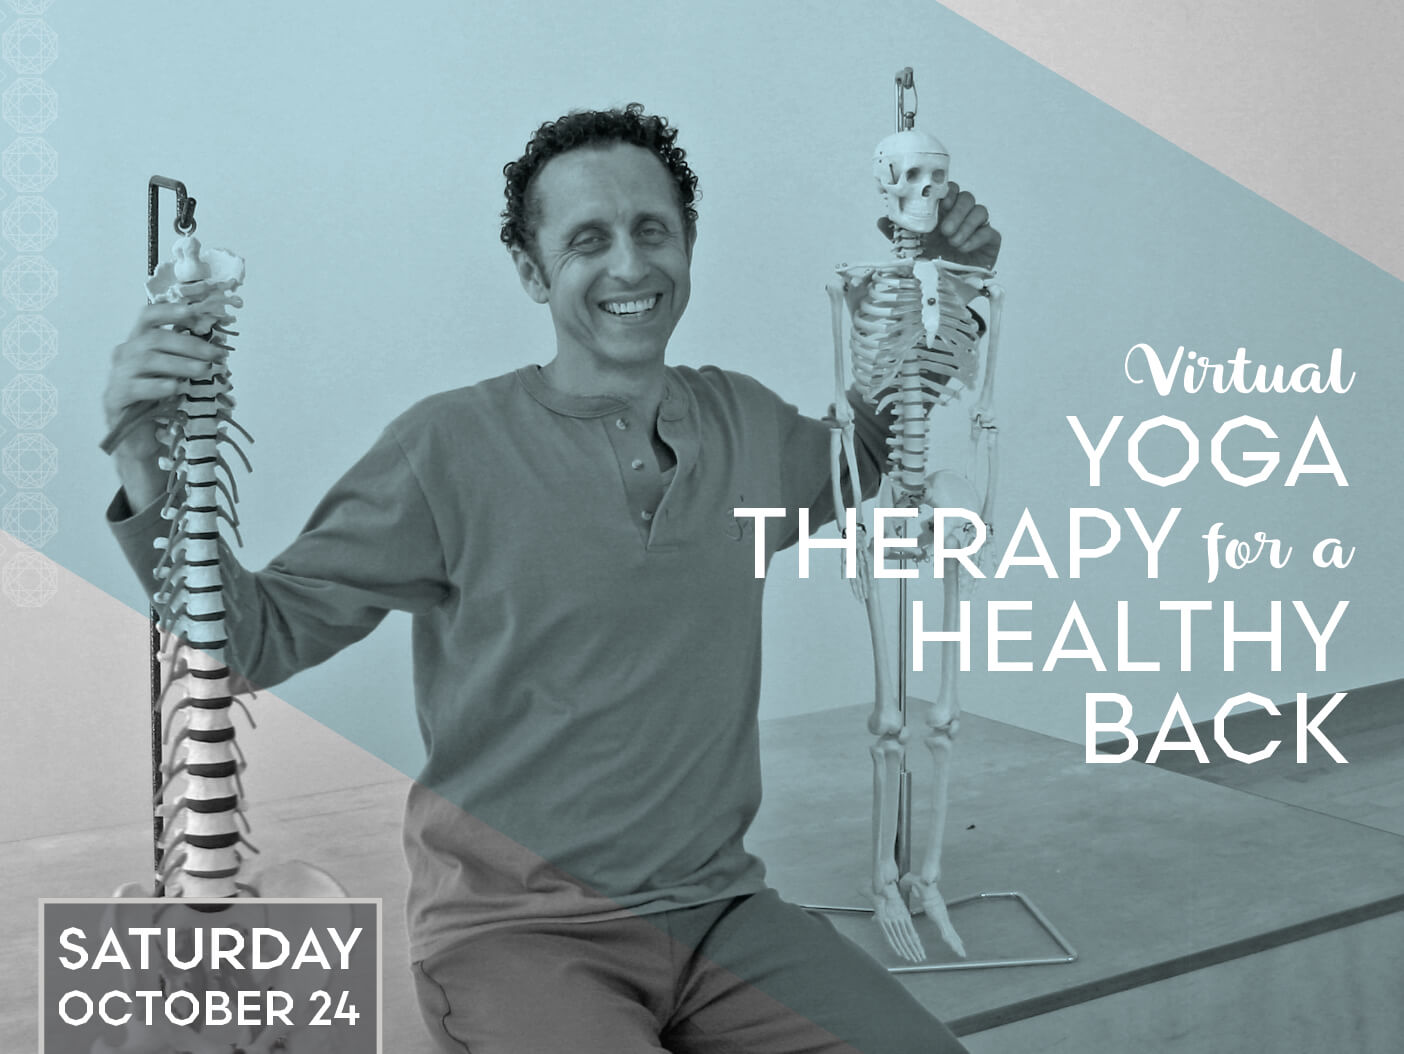 Yoga Therapy for a Healthy Back